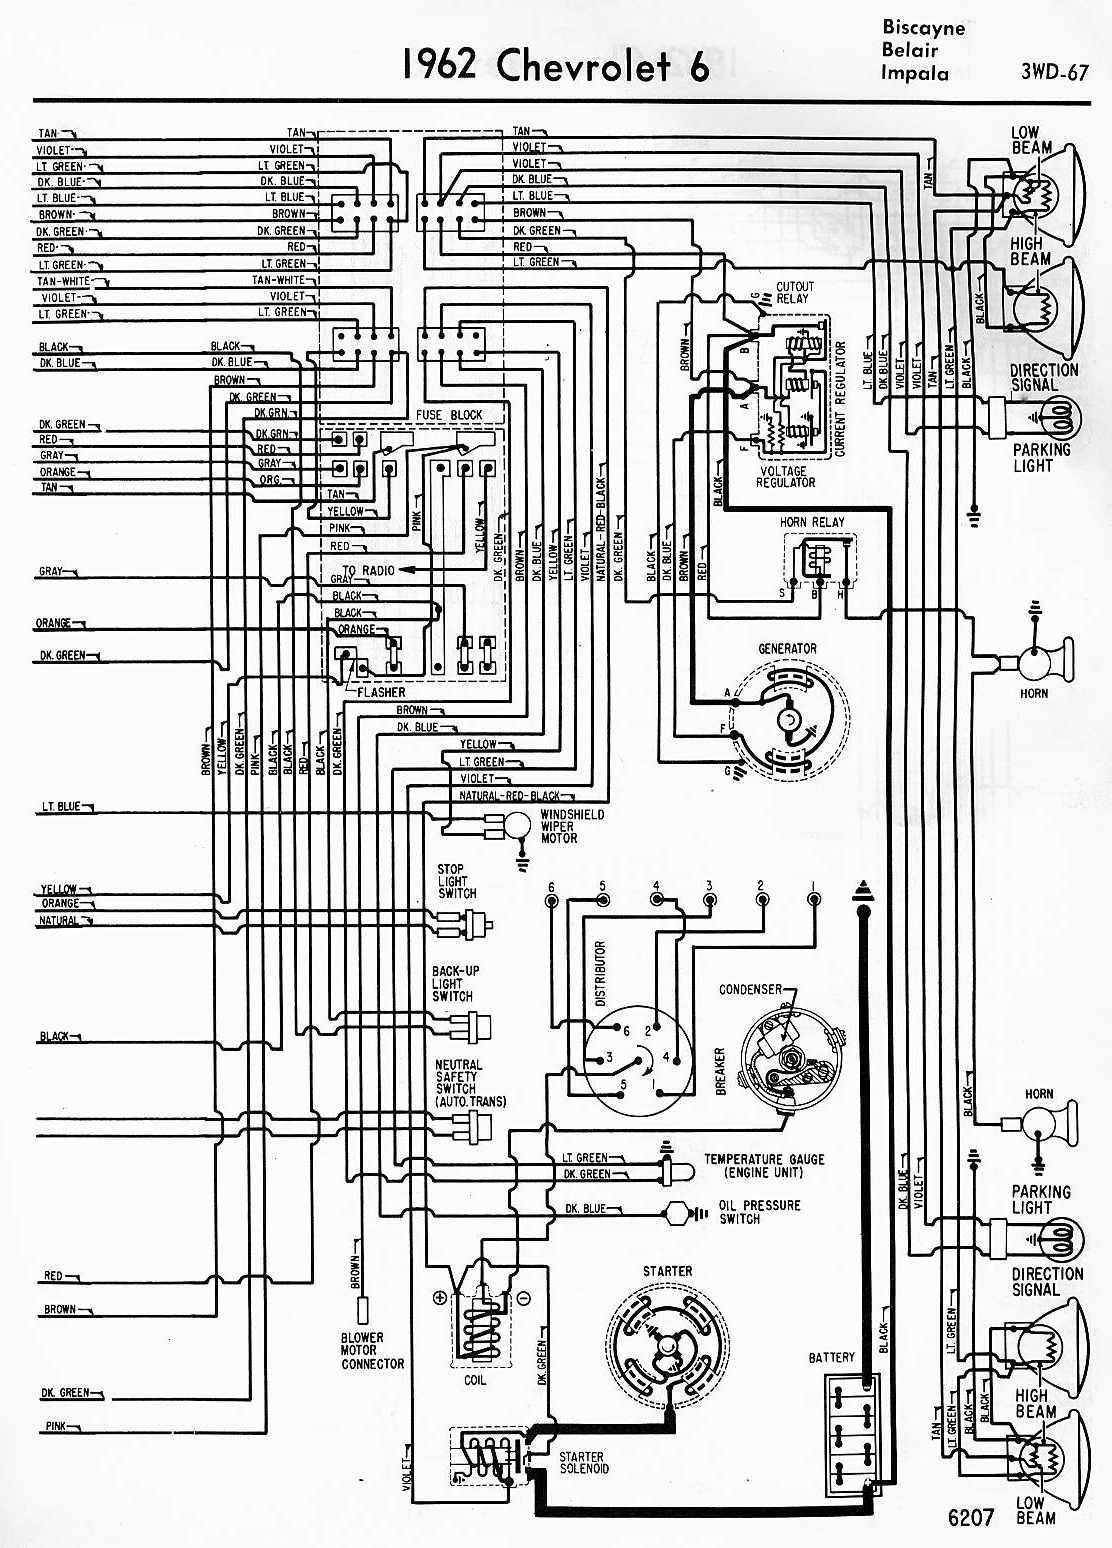 medium resolution of under dash wiring harness 1970 impala wiring diagram mega1970 impala wiring harness wiring diagram week 1970